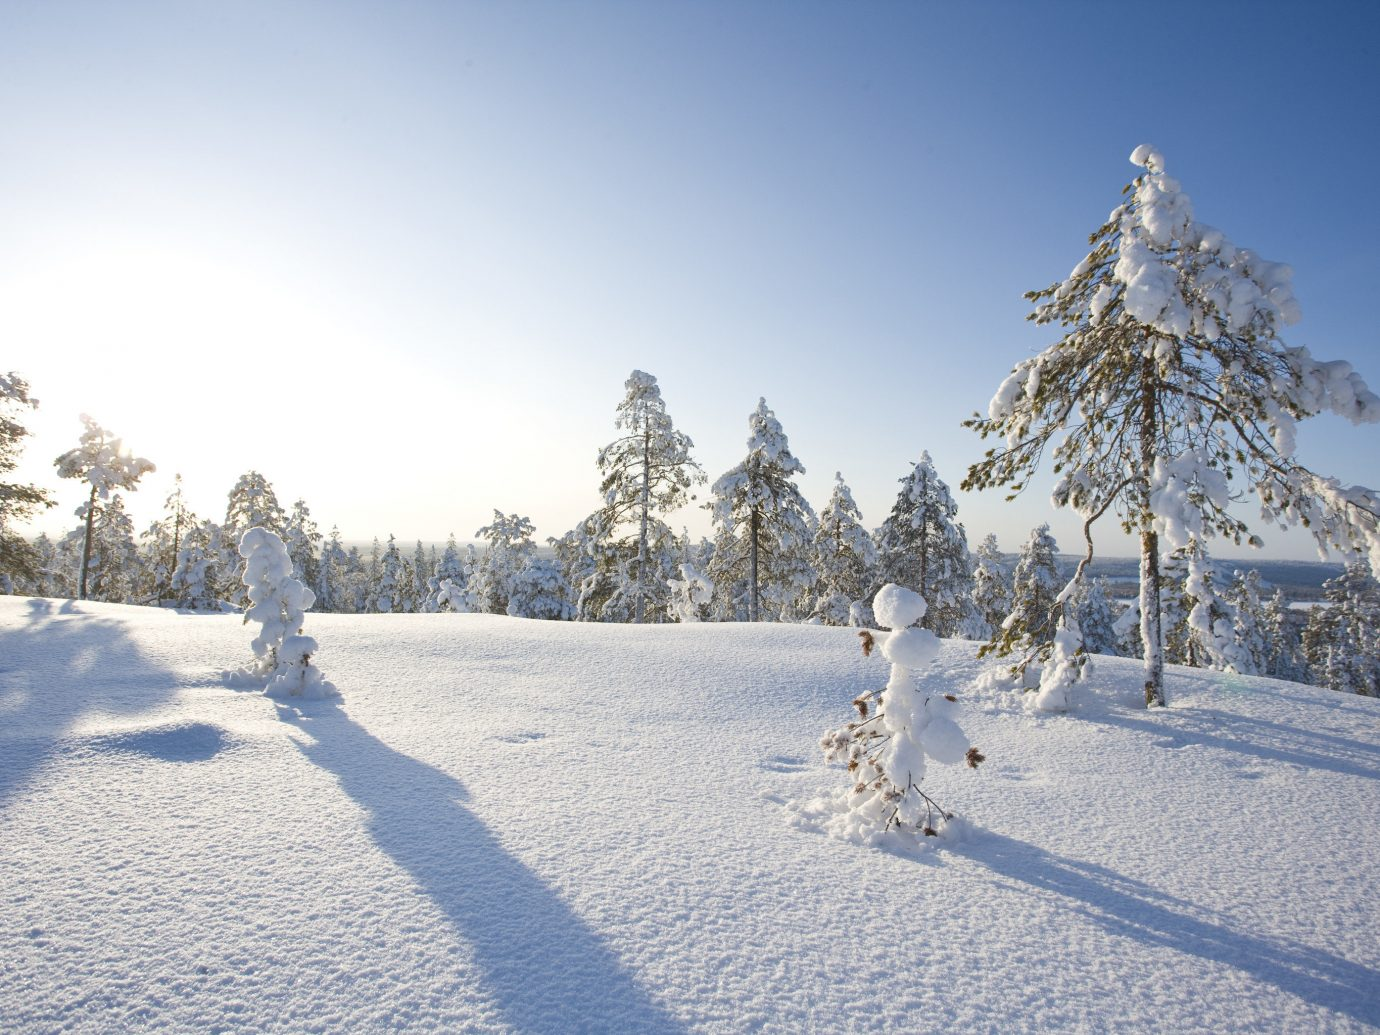 Adventure outdoor snow sky Winter skiing Nature tree weather person slope season freezing footwear woody plant frost piste hill sunlight ski slope day